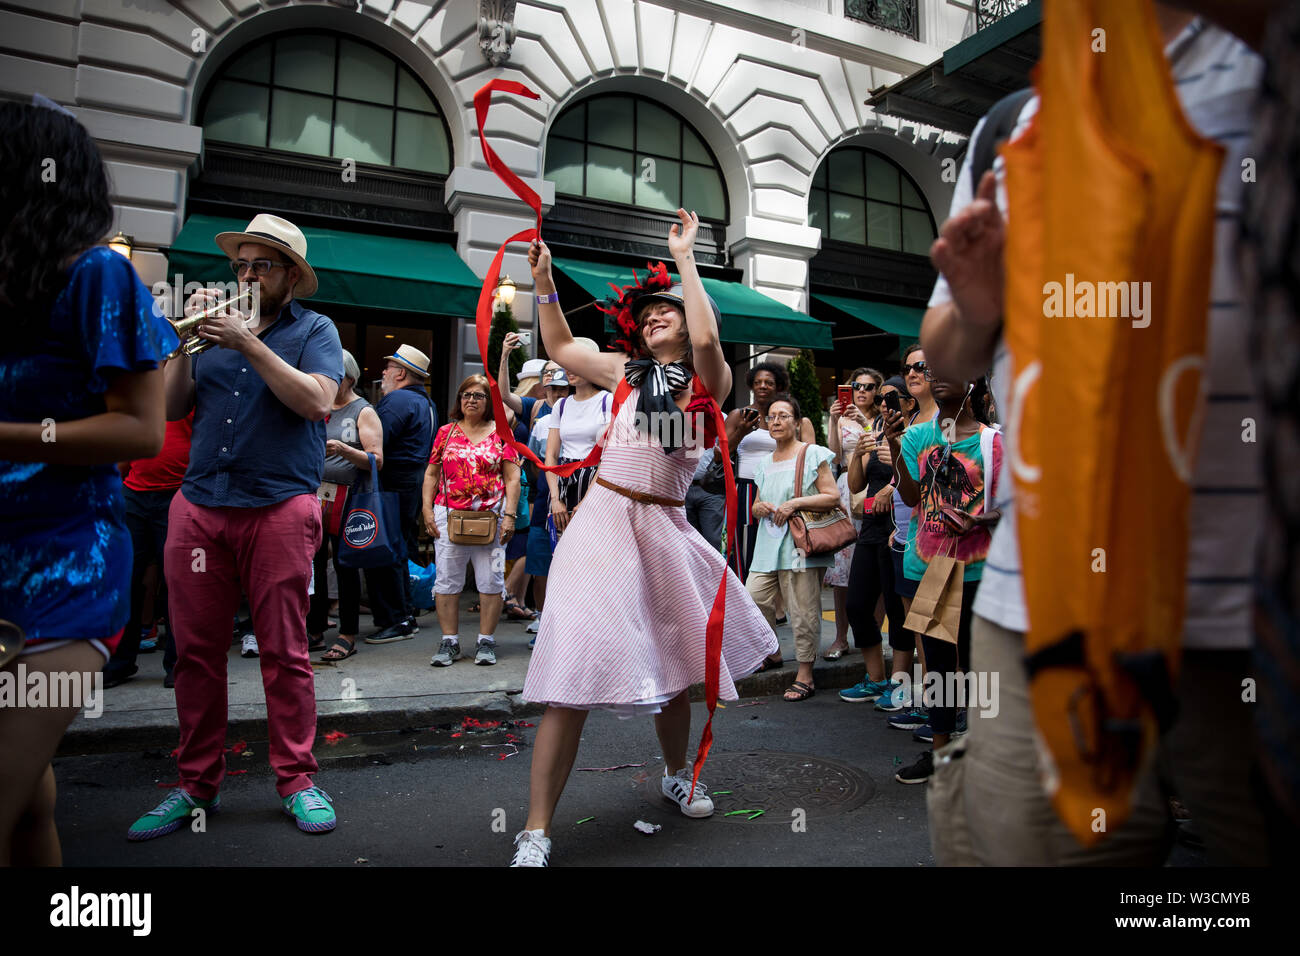 New York, USA. 14th July 2019. New York, French National Day. 14th July, 1789. Members of the Hungry March Band perform during the French Institute Alliance Francaise (FIAF)'s Bastille Day Celebration in New York, the United States, July 14, 2019. Bastille Day, also known as the French National Day, commemorates the start of the French Revolution and the storming of the Bastille in Paris on July 14, 1789. Credit: Michael Nagle/Xinhua/Alamy Live News - Stock Image